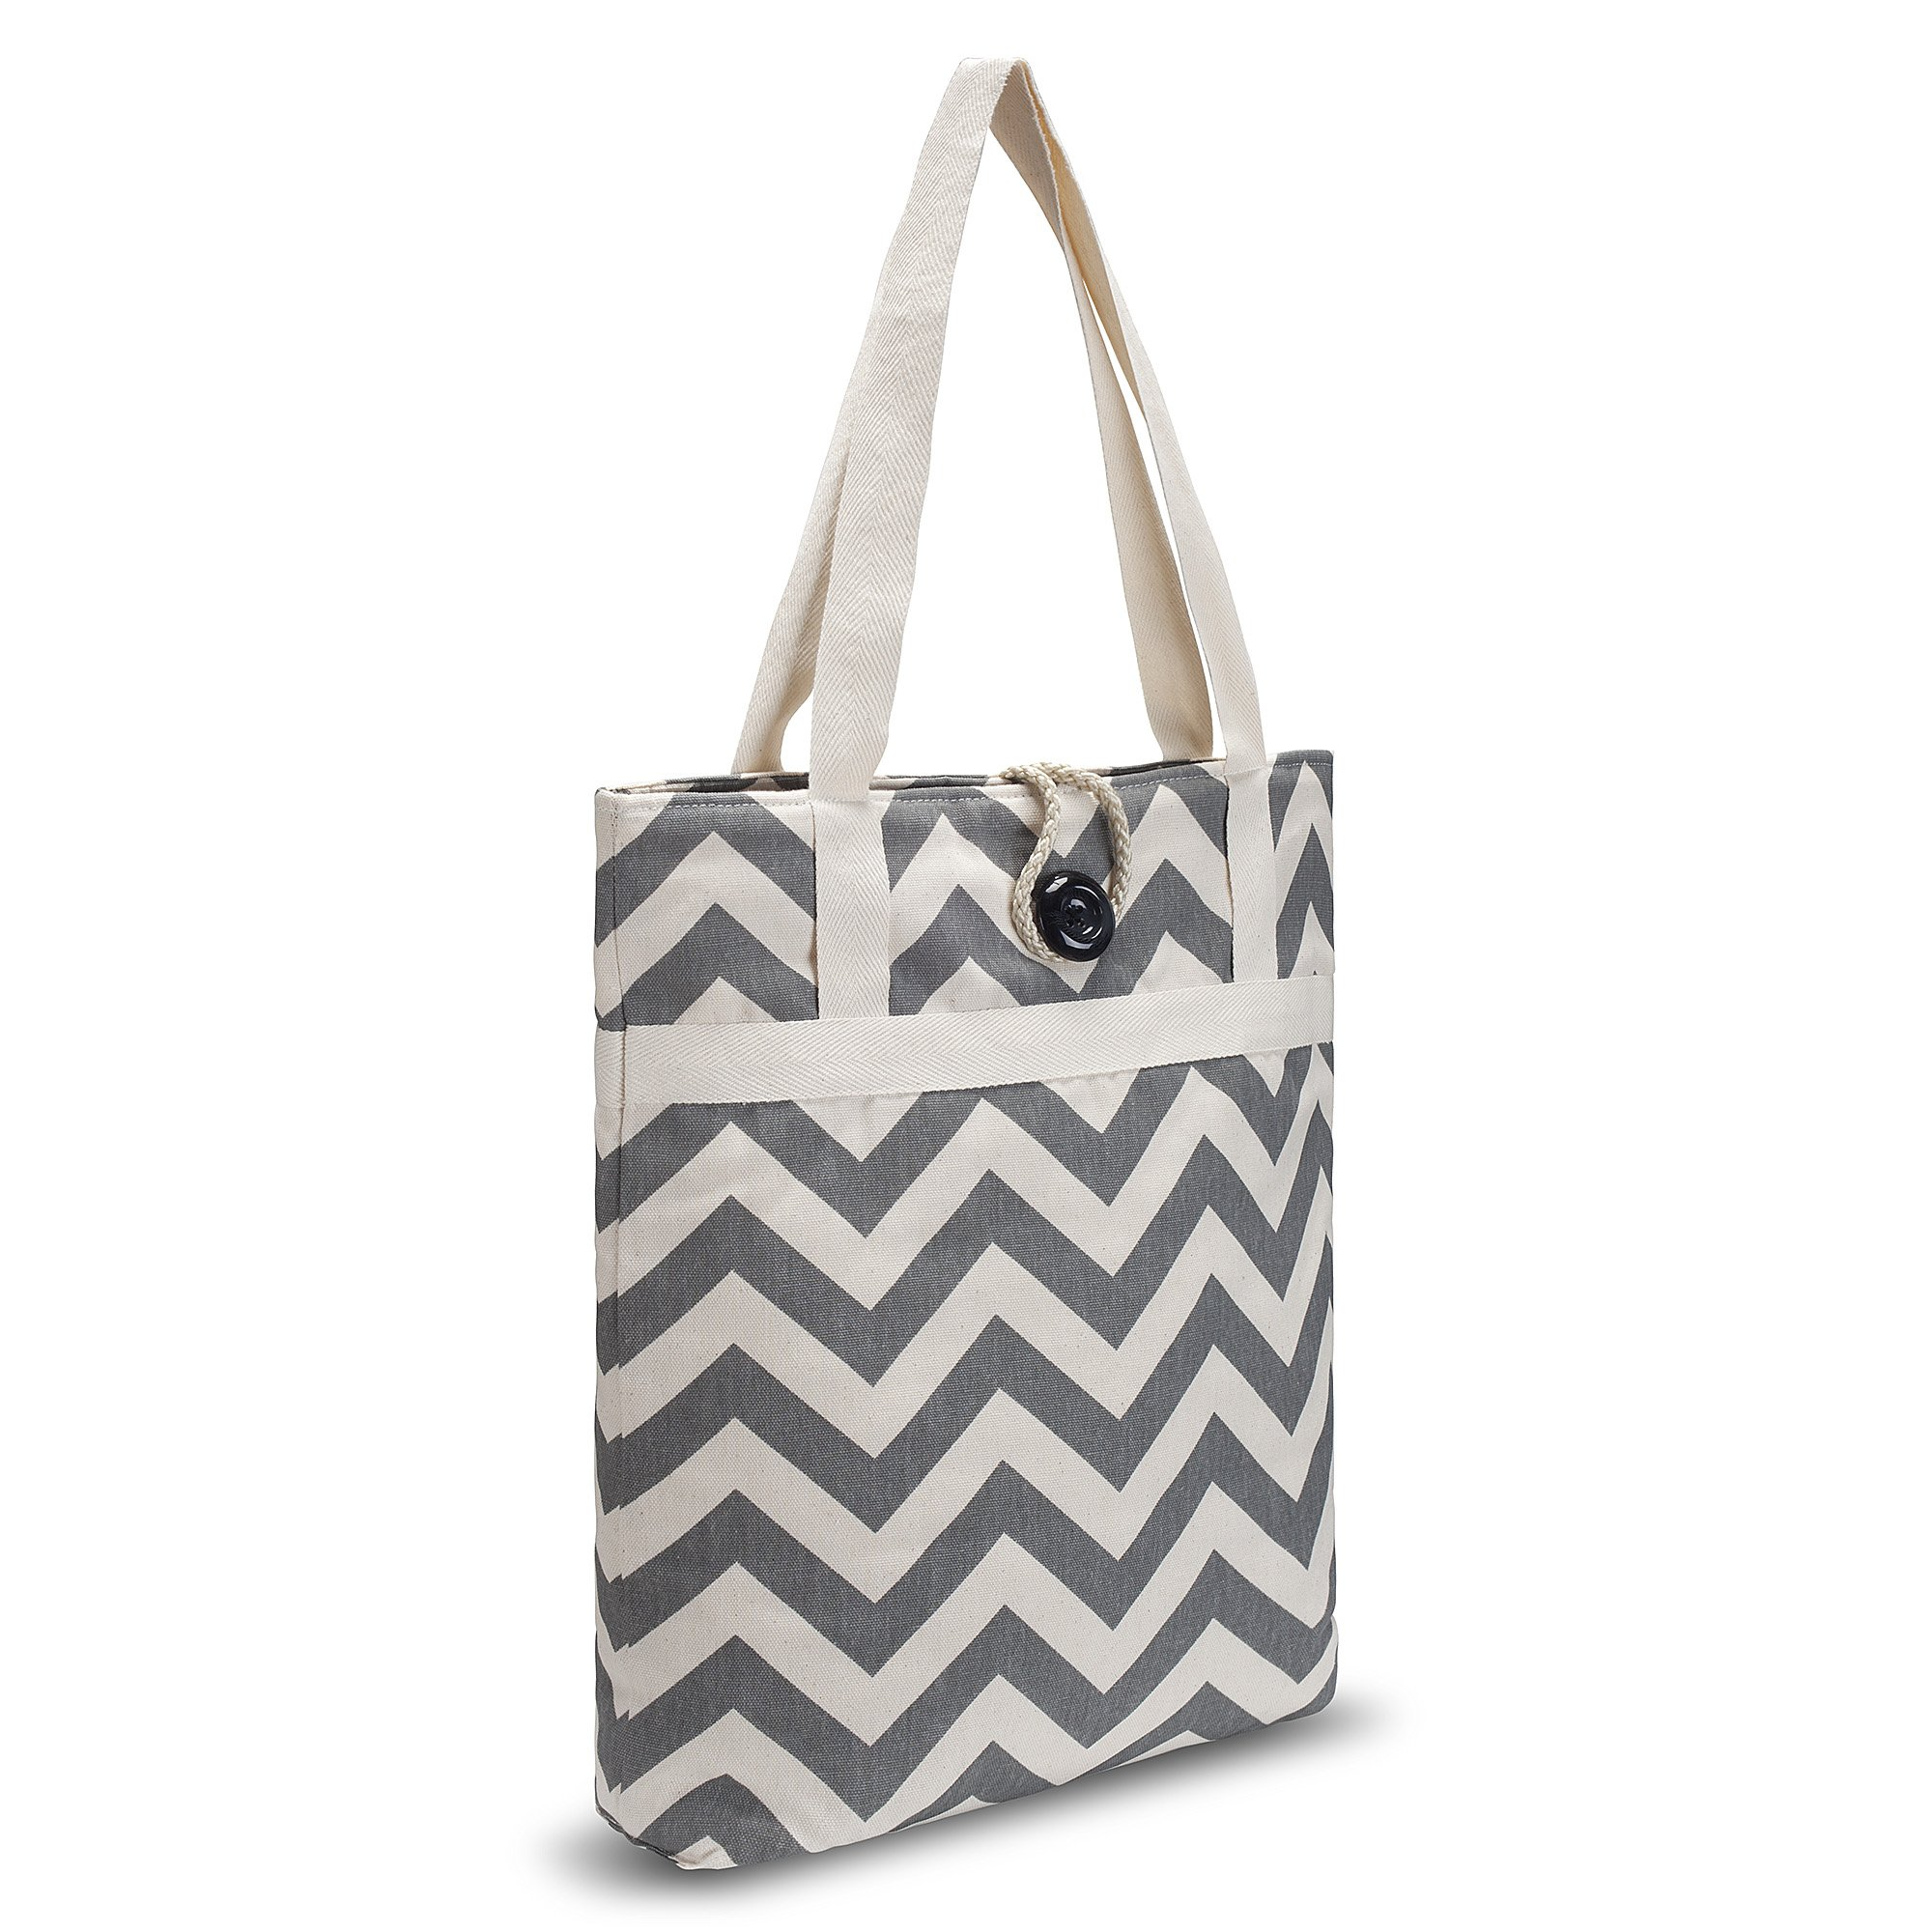 Kuzy - Tote Bag Travel Bag Cotton Handmade 16-inch for Beach, Pool & School and to Carry MacBook & Laptop, Book Bags - Chevron Zig-Zag Grey